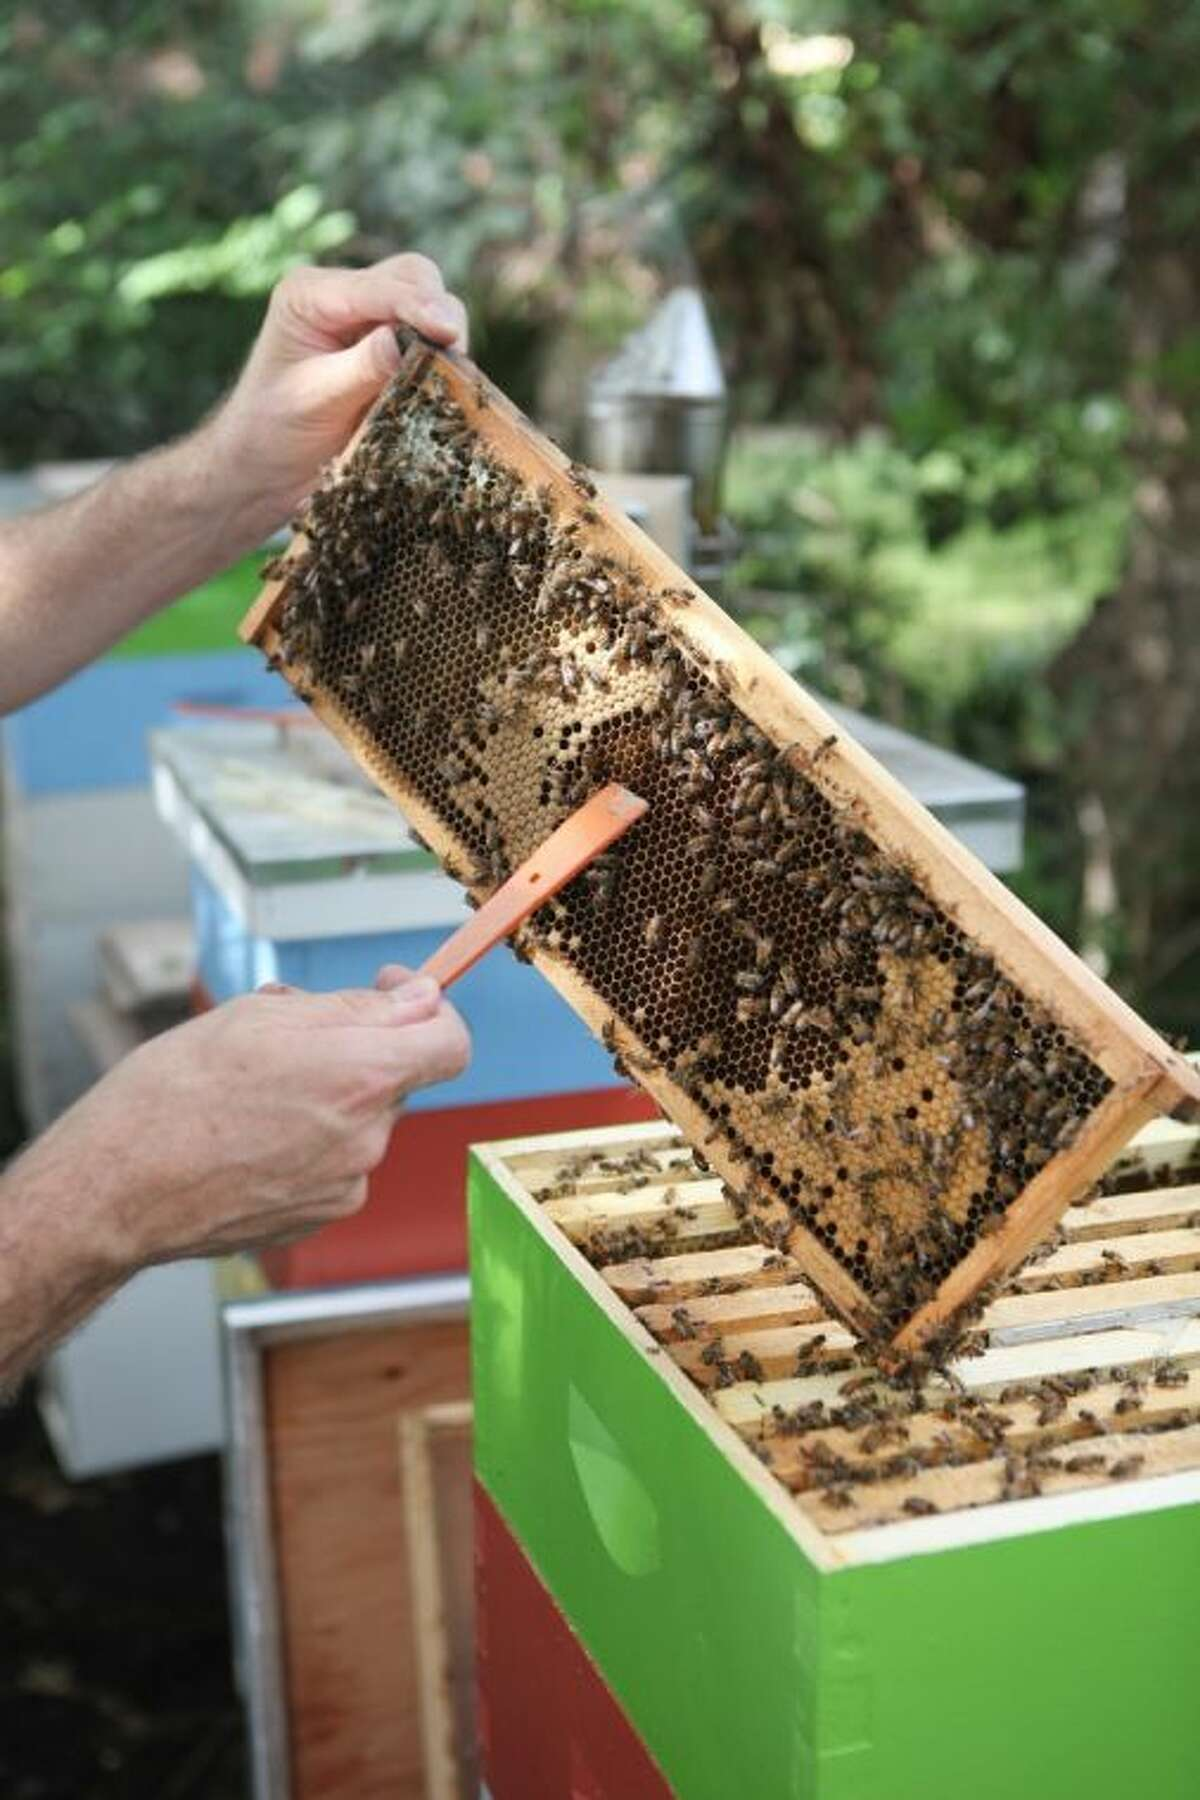 Mark Anderson checks on his honey bees in Bellaire. The wax-covered cells contain honey that has reached the right moisture content and have been capped by the bees.